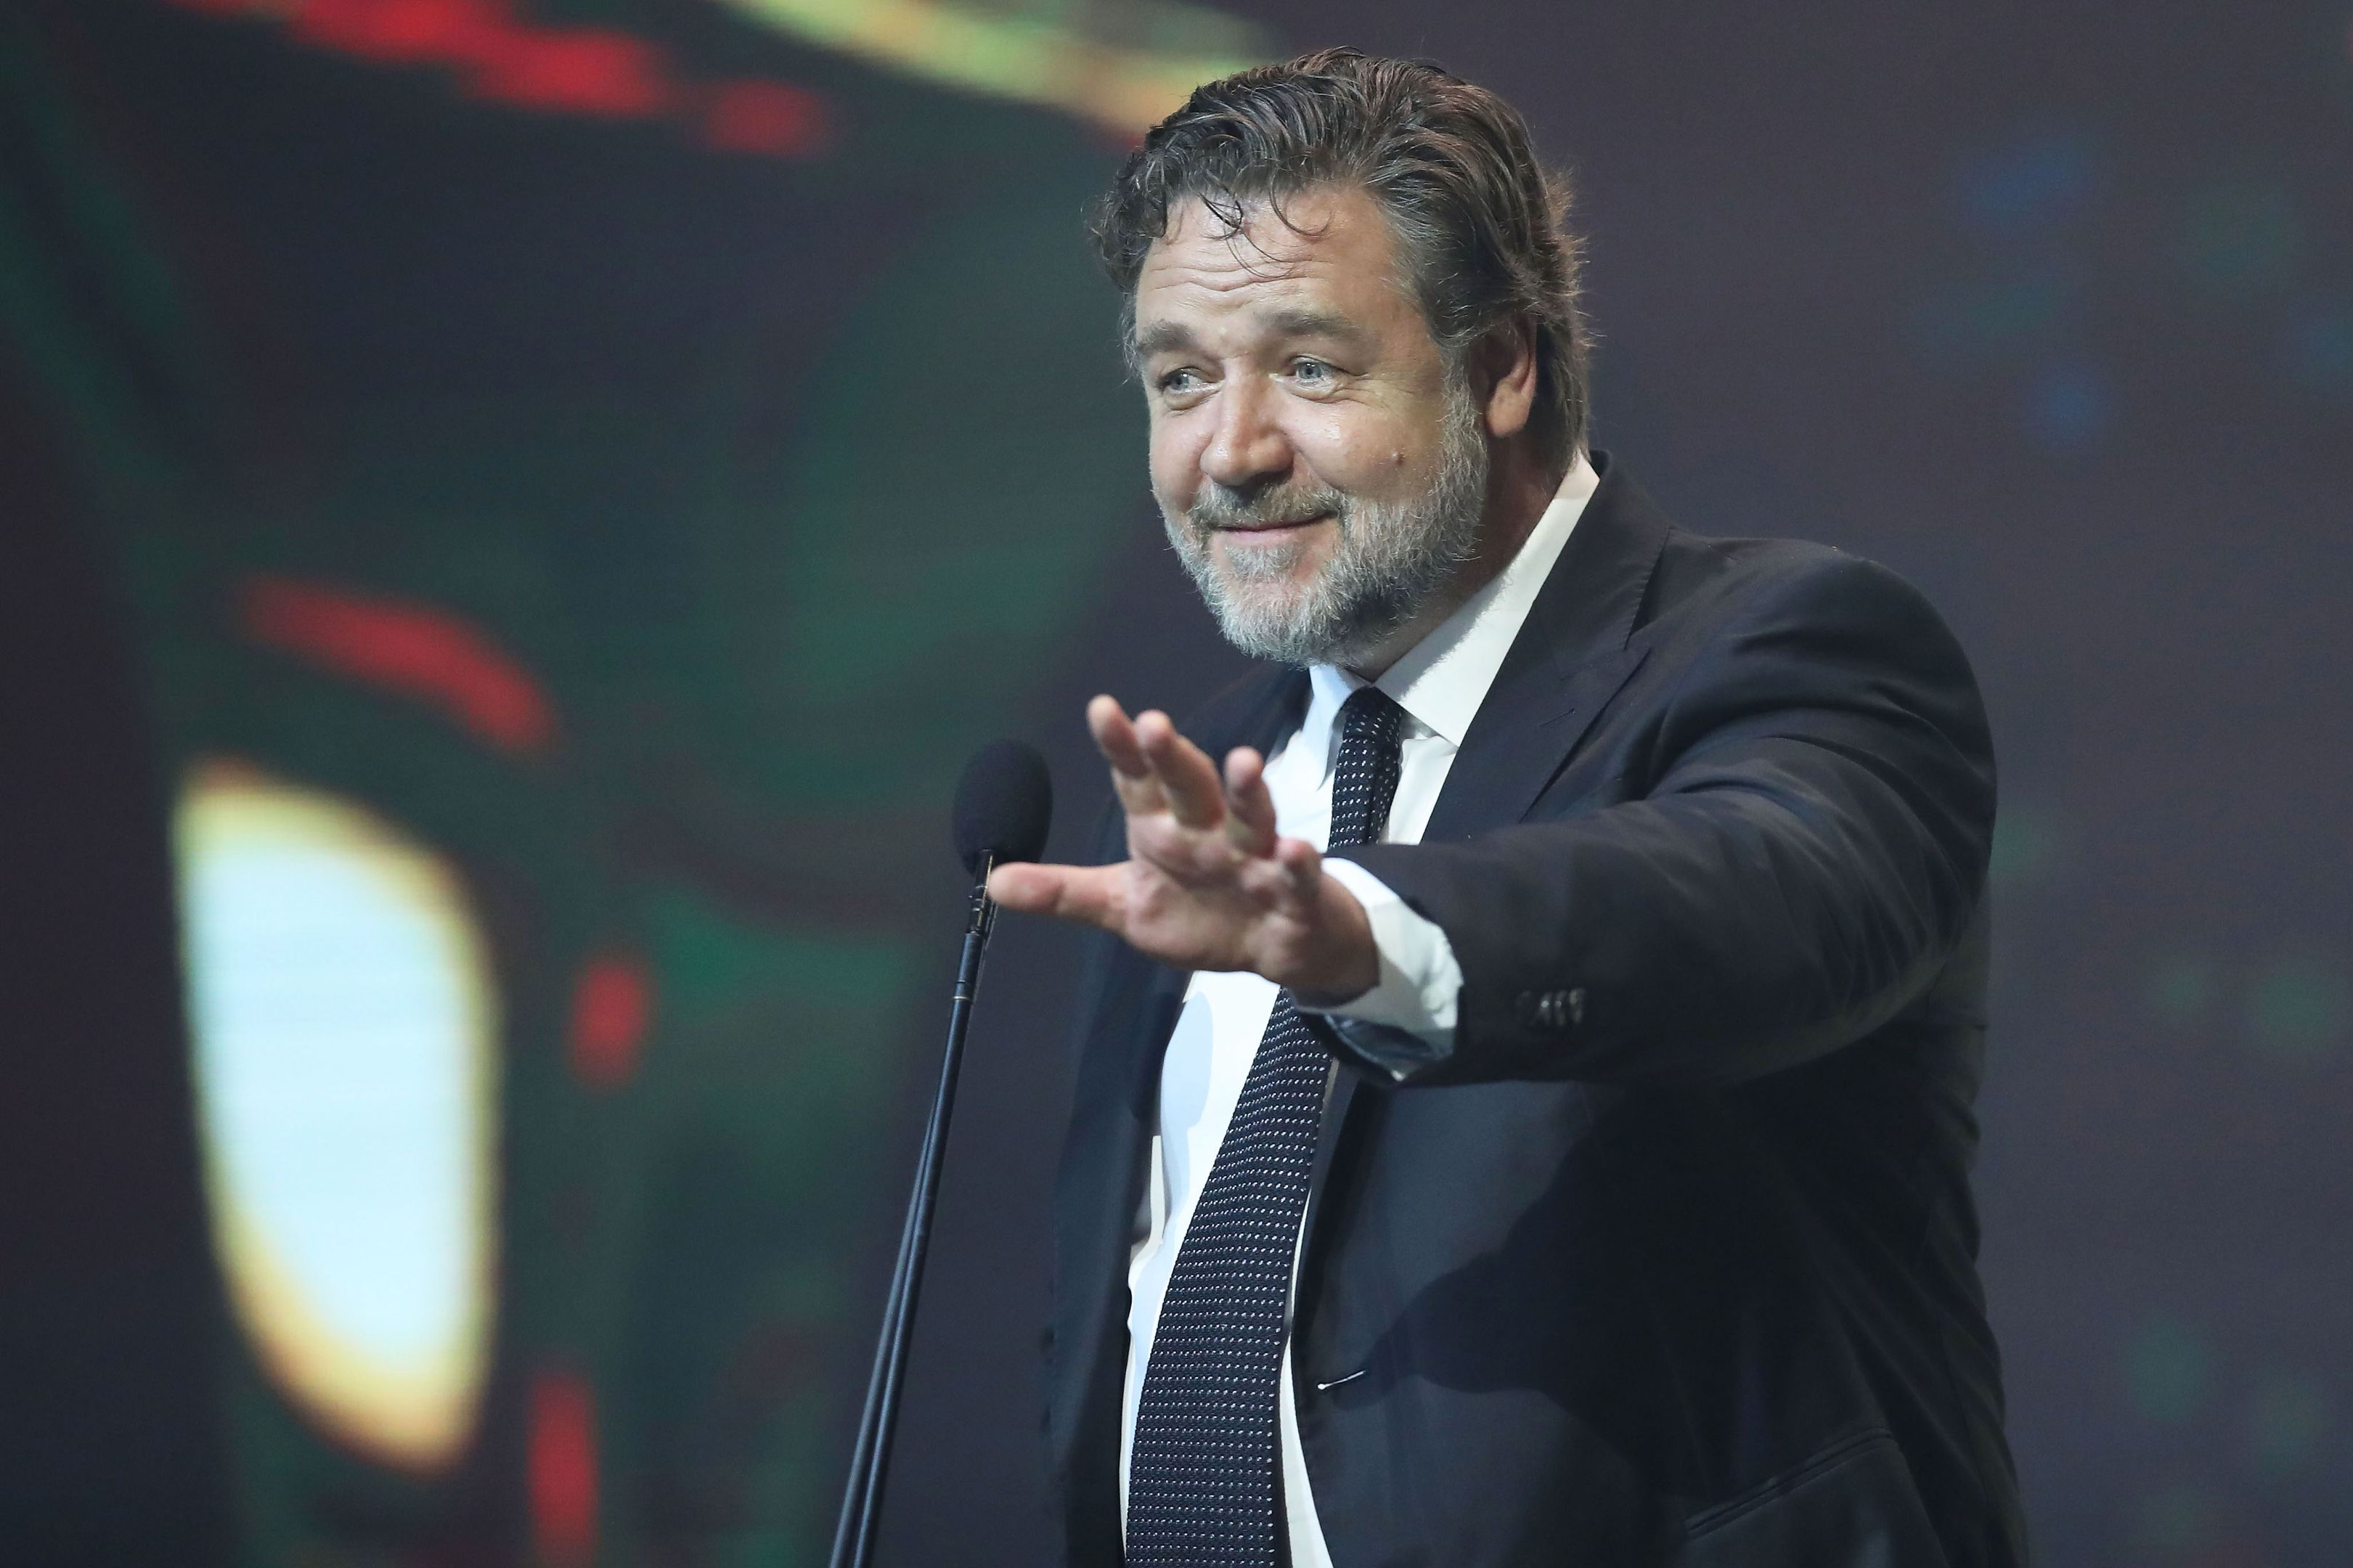 Russell Crowe apologises for joke about